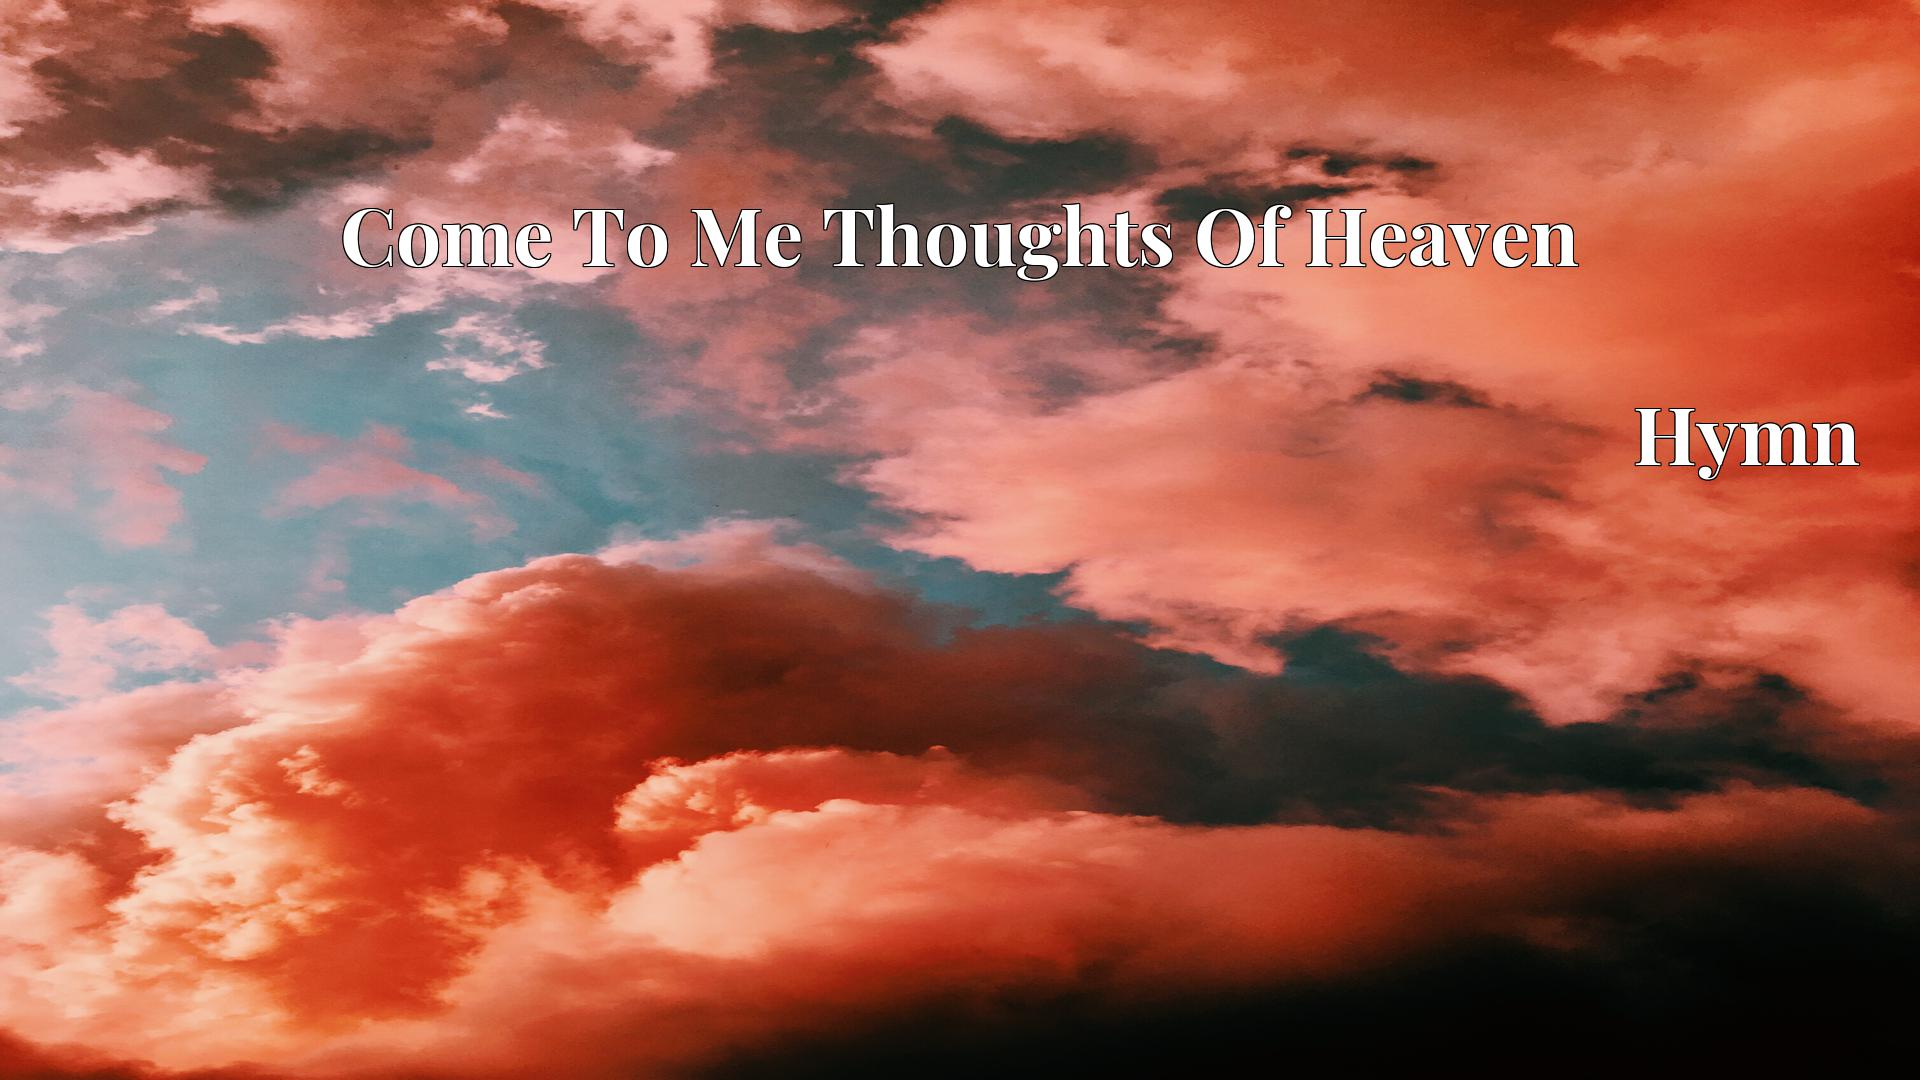 Come To Me Thoughts Of Heaven Hymn Lyric